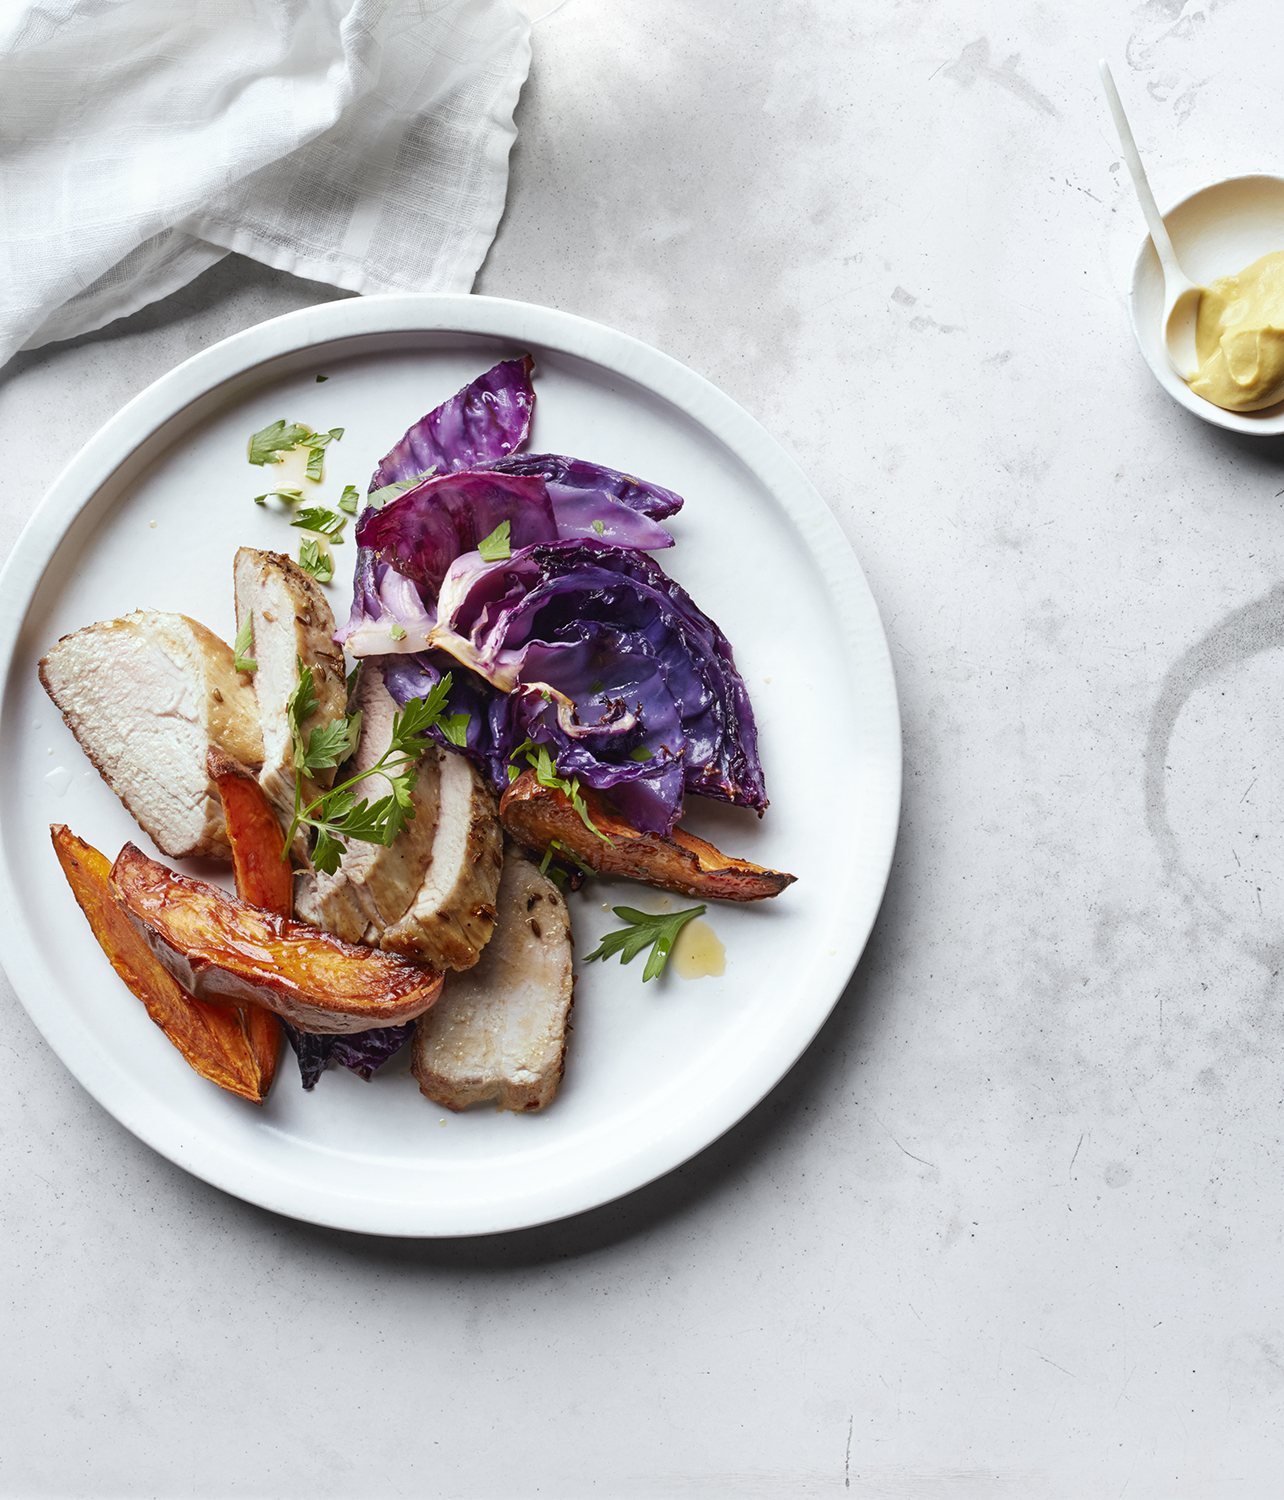 Pork Tenderloin With Roasted Sweet Potatoes and Cabbage